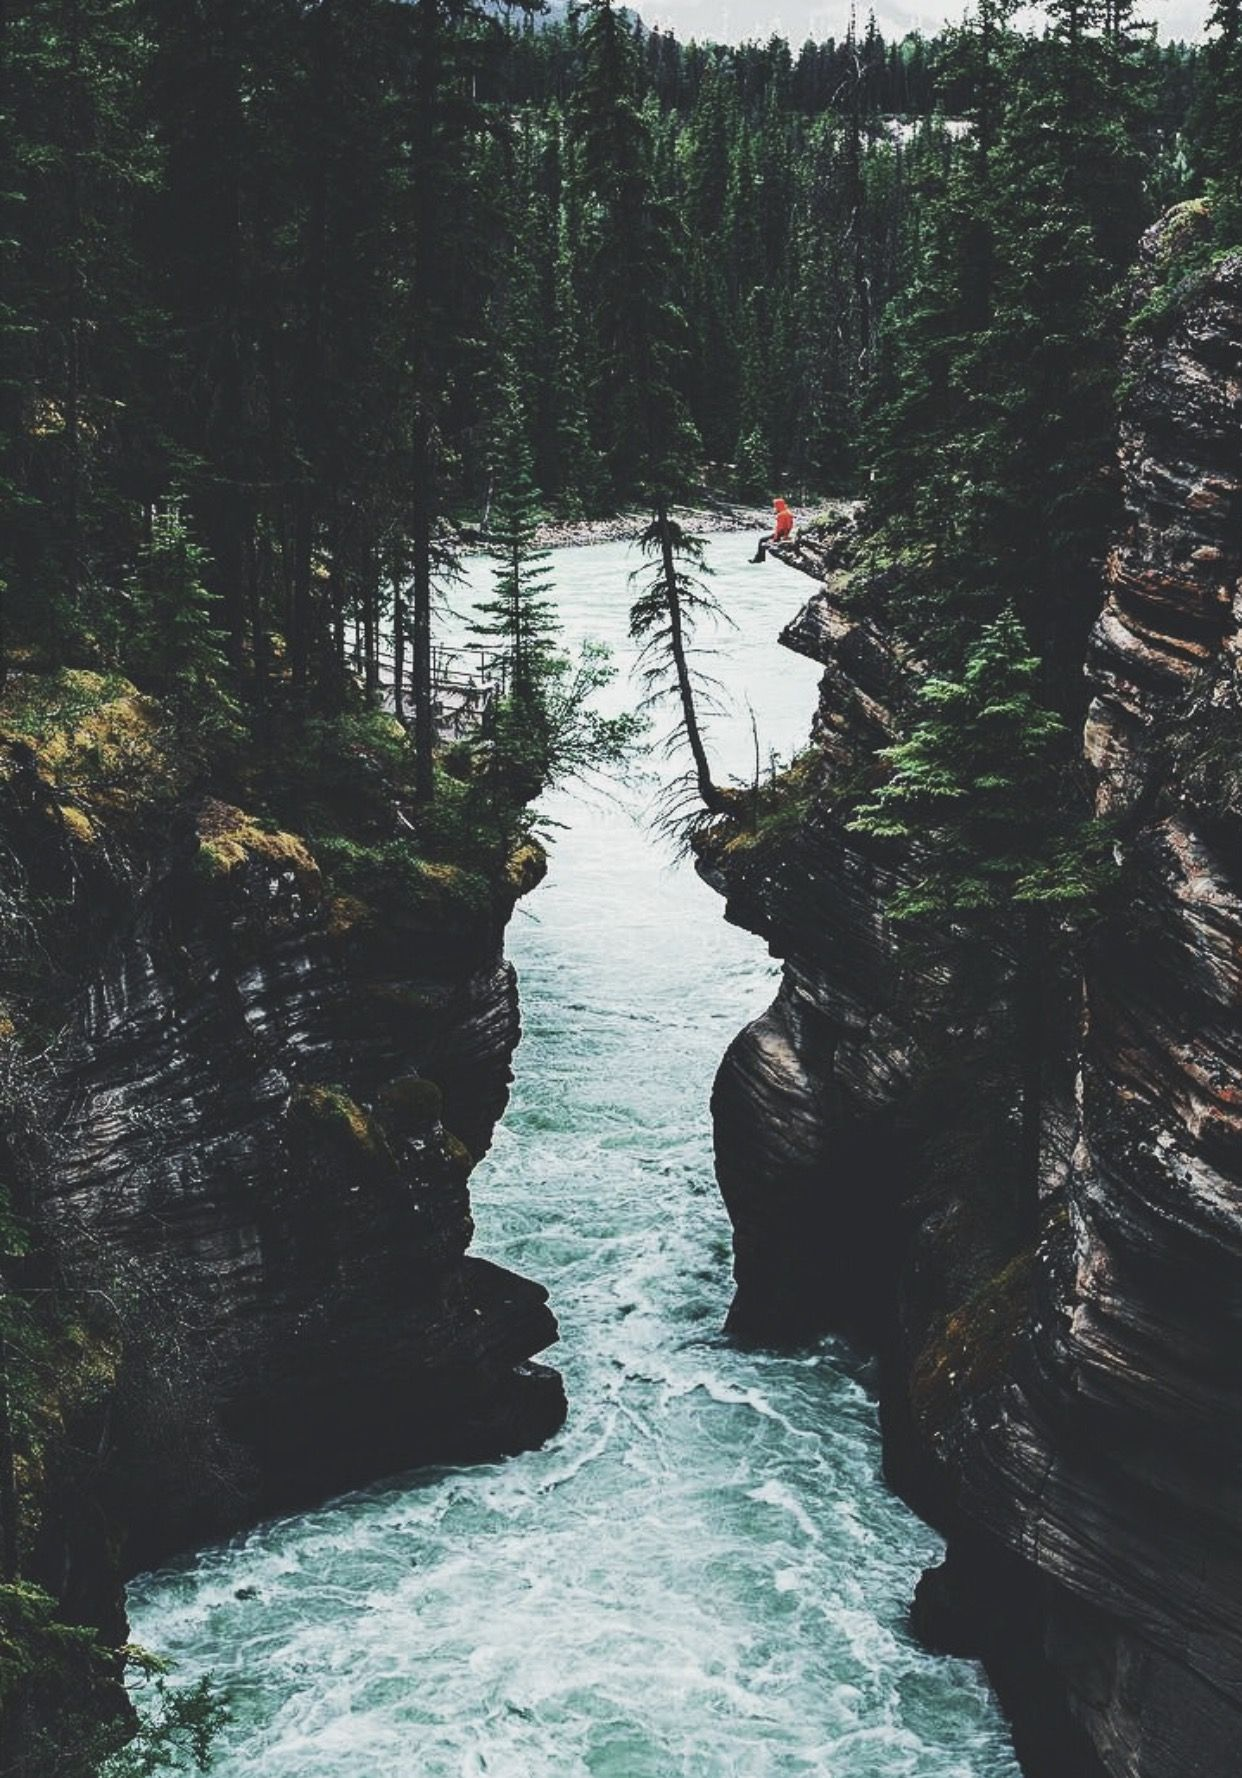 Natural Perfection Theme Into The Wild River Natural Wanderlust Explore Adventure Nature Photography Campi Nature Photography Scenery Nature